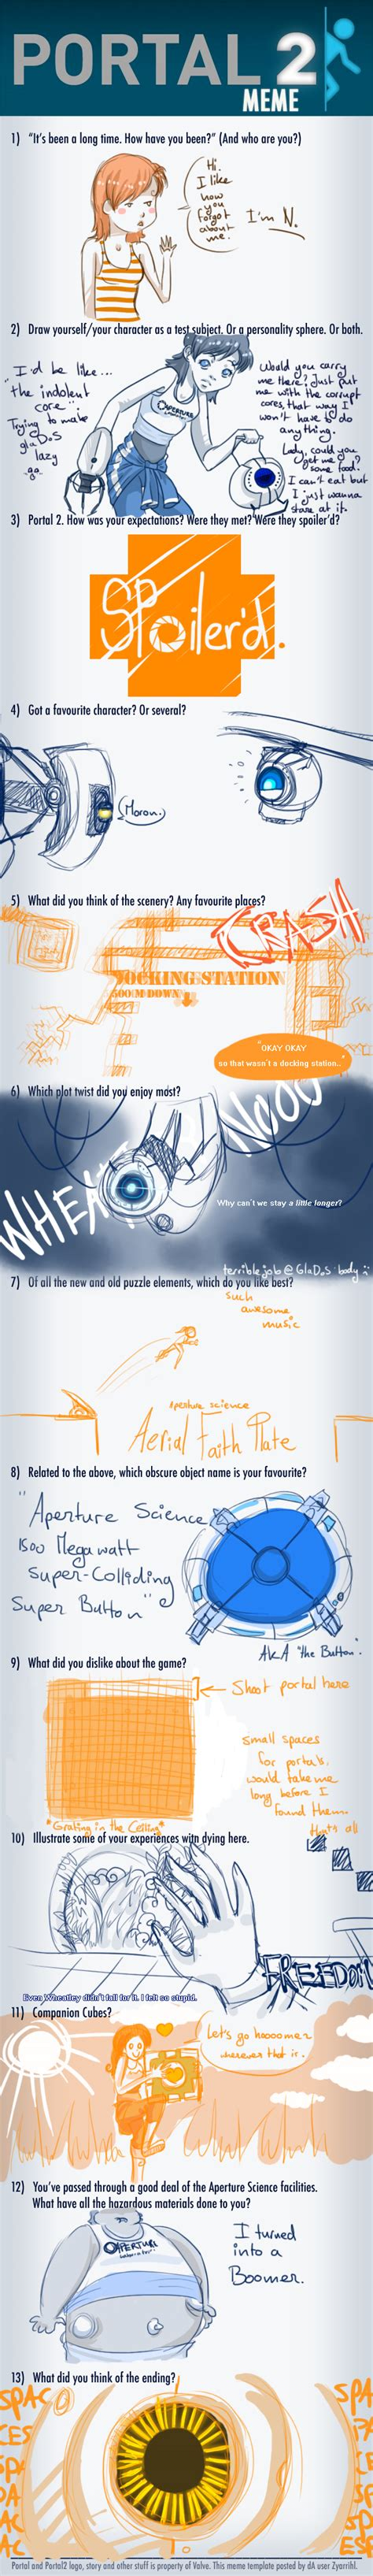 Portal Memes - portal 2 meme of spoilerism by voicelesss on deviantart